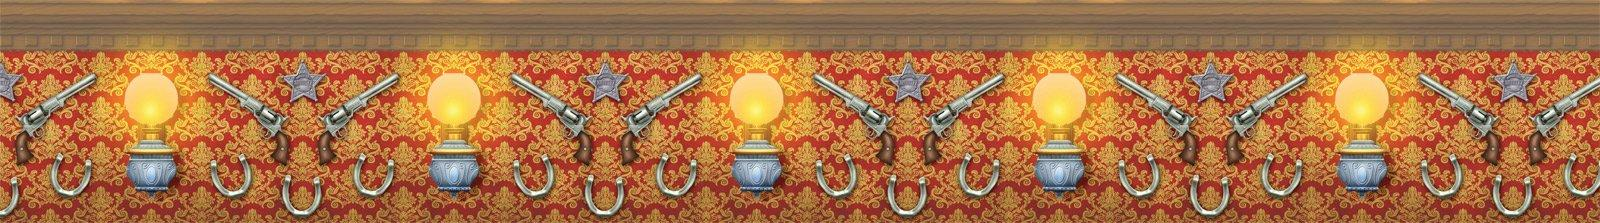 WILD_WEST_BORDER_ROLL_WITH_REVOLVERS_AND_LAMPS